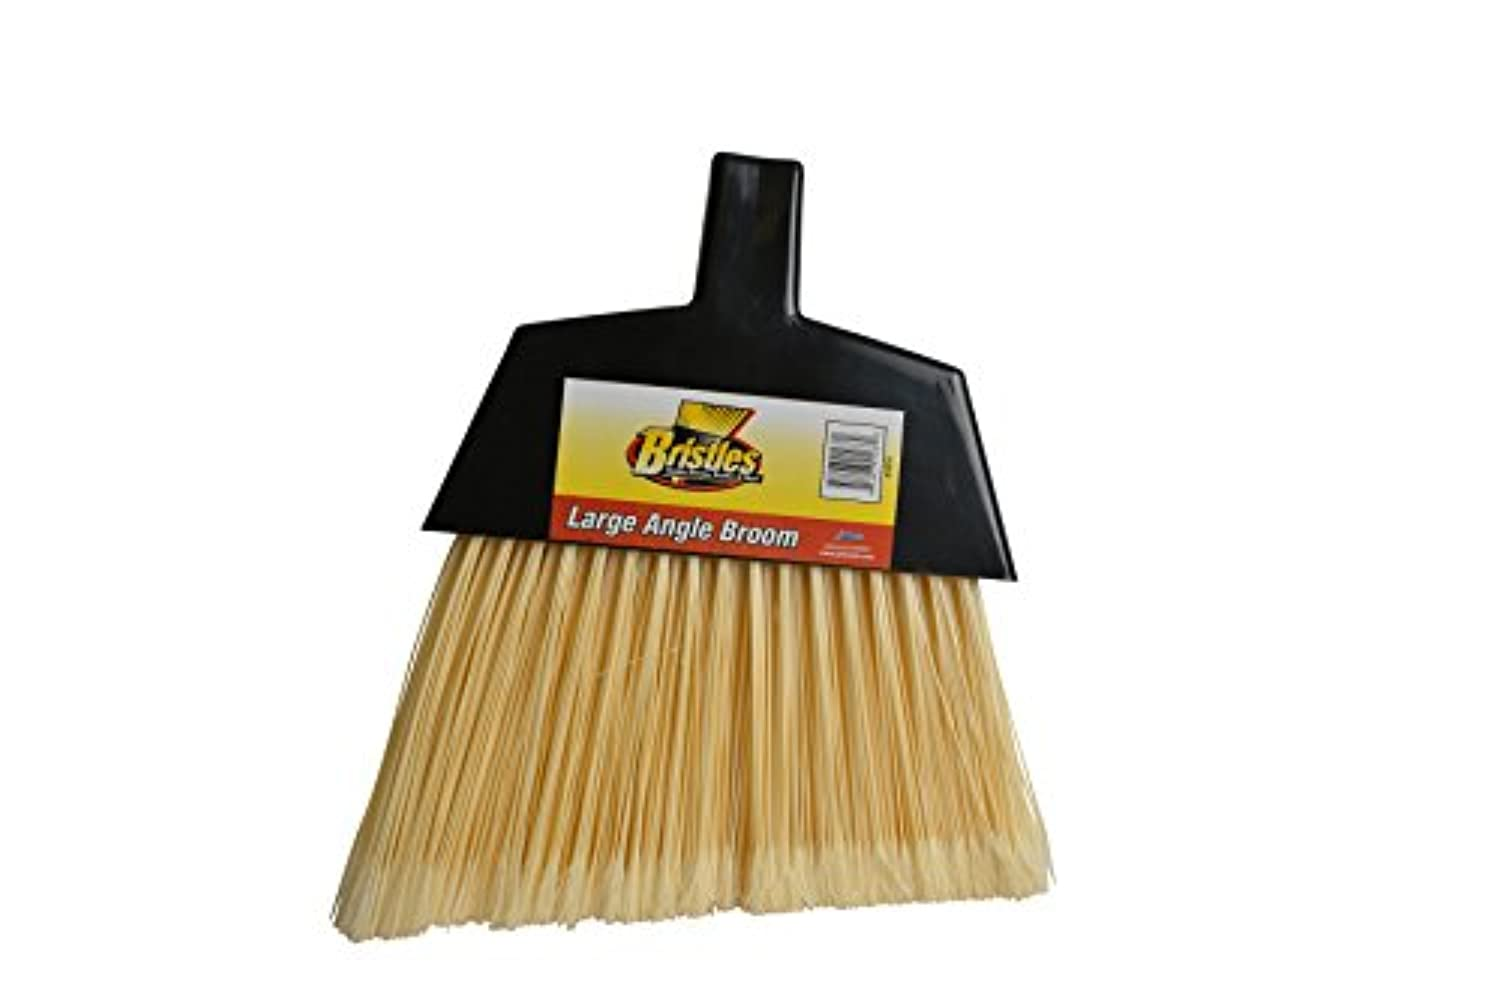 Janico 4050 48 in. Large Angle Broom Poly Bristles Metal Handle, Black - Case of 24